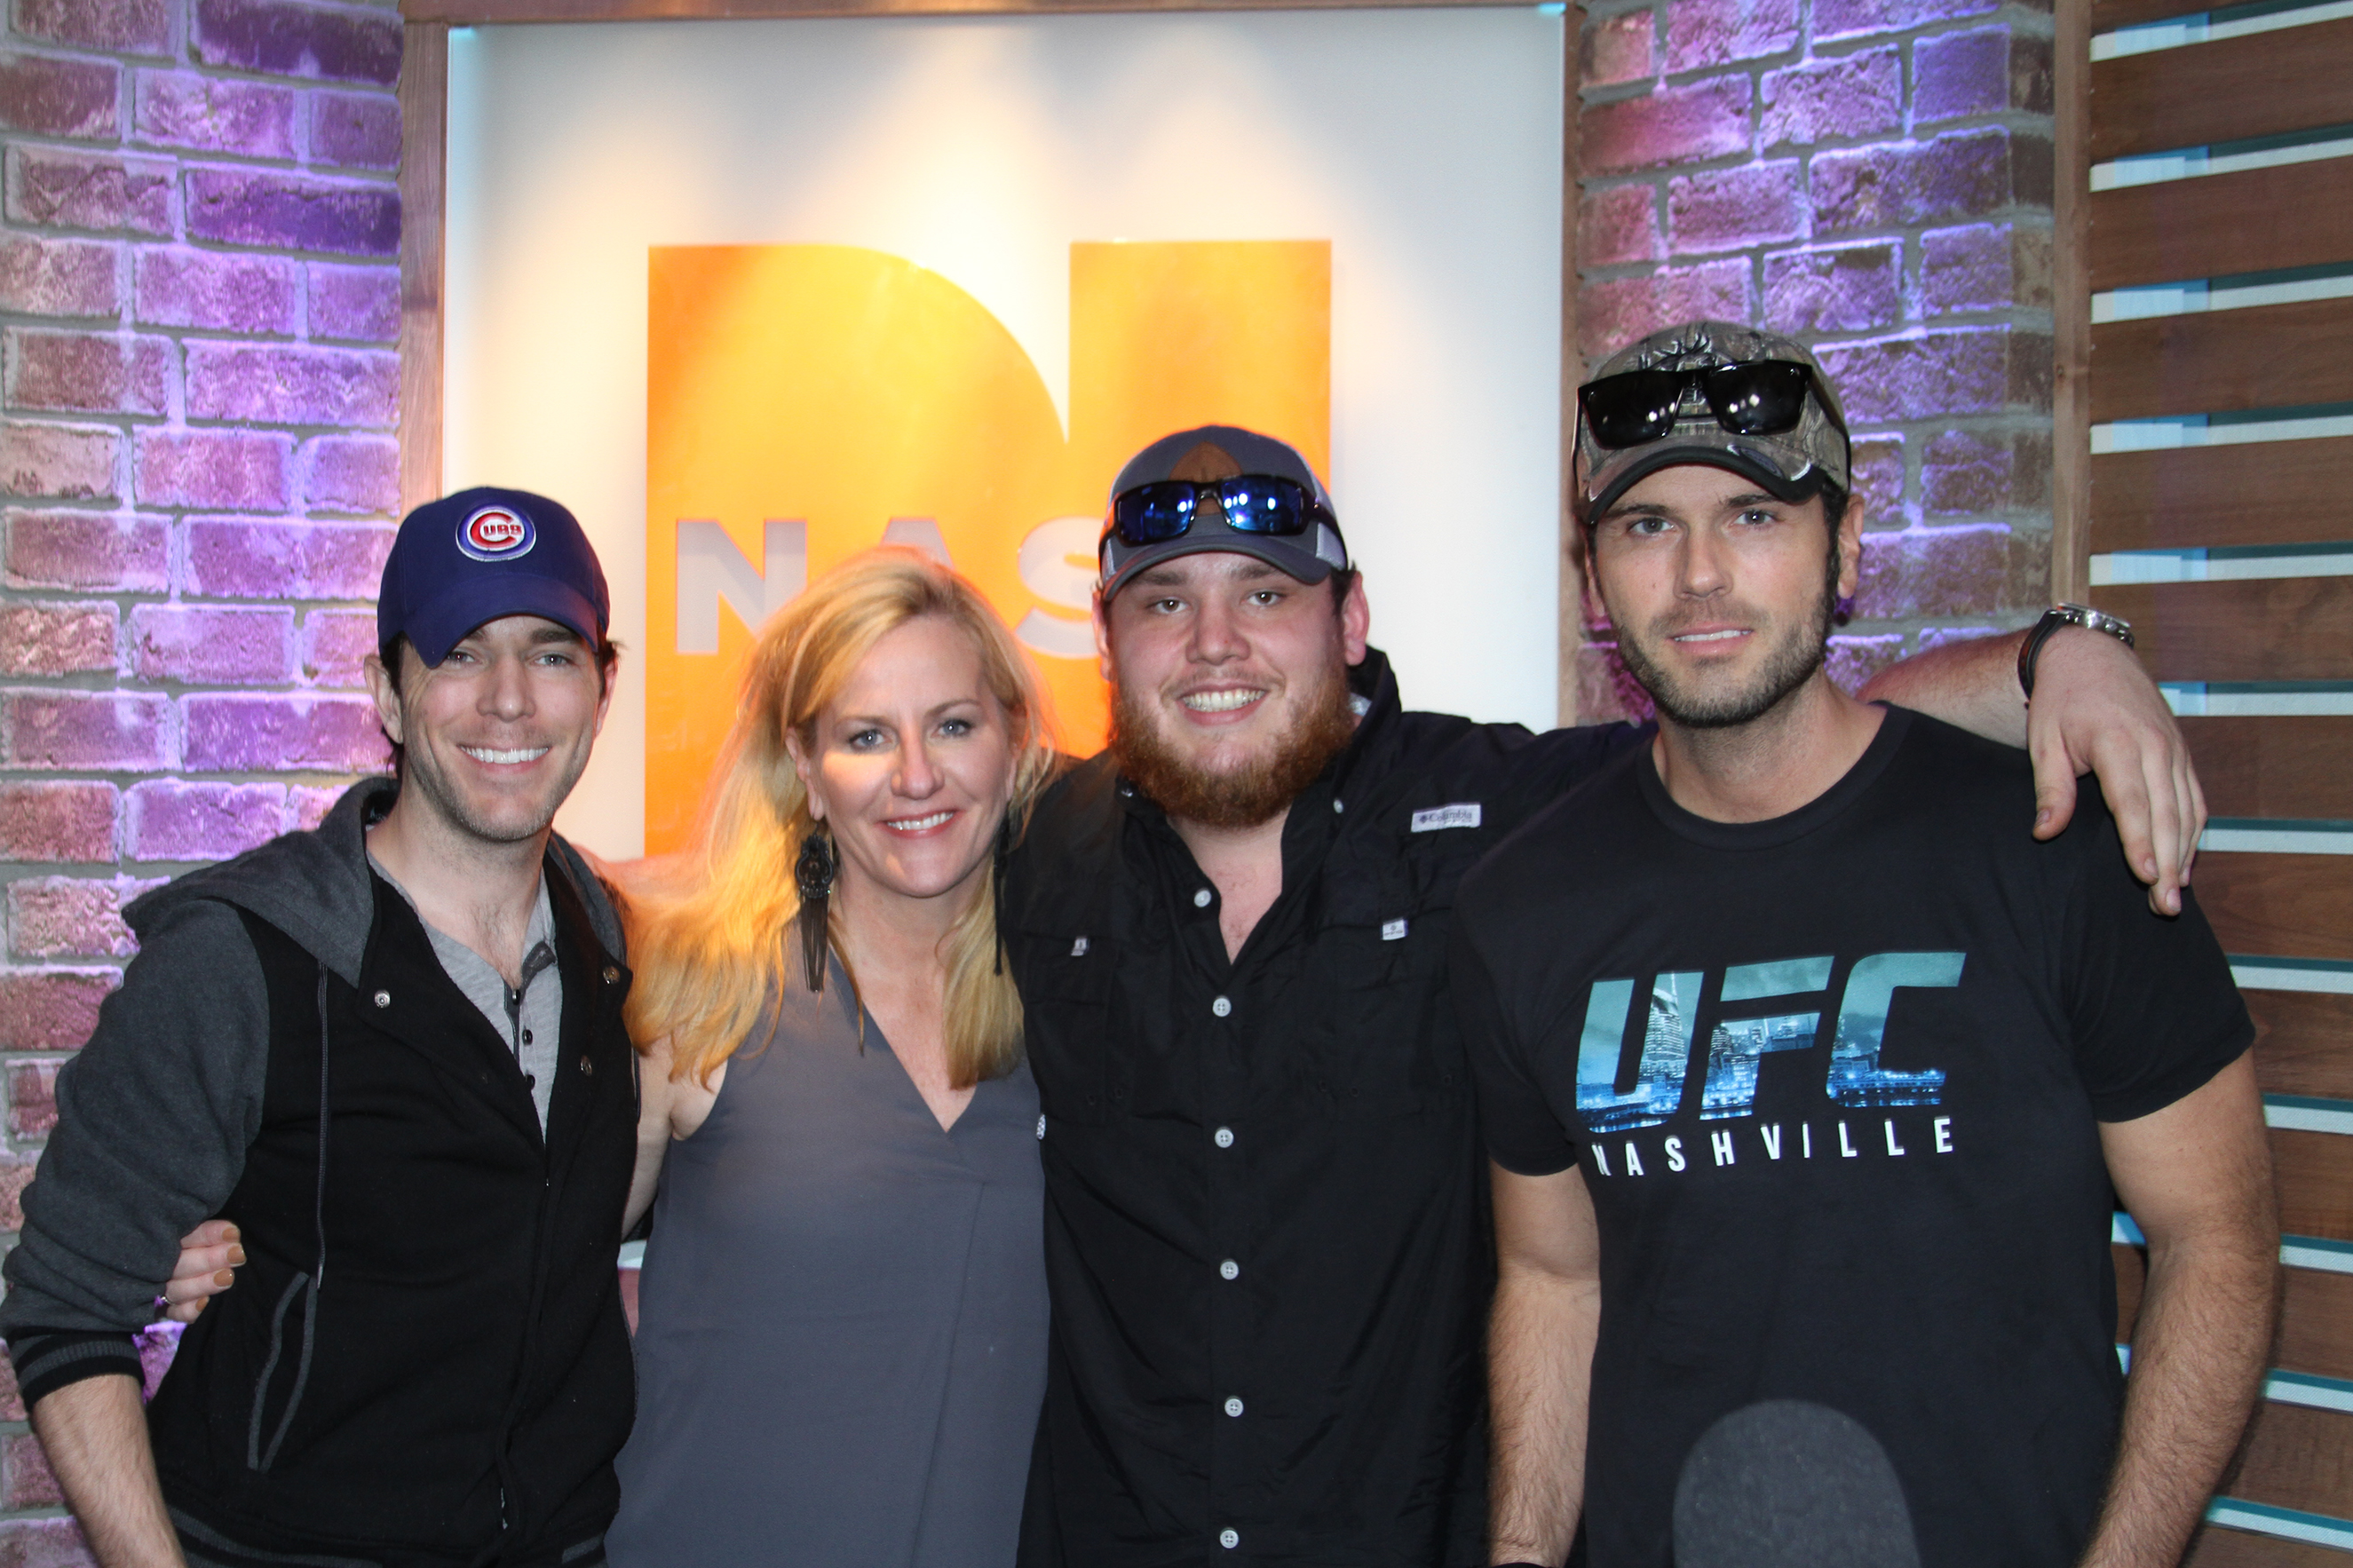 Luke combs talks about his hit hurricane new album and more luke combs talks about his hit hurricane new album and more m4hsunfo